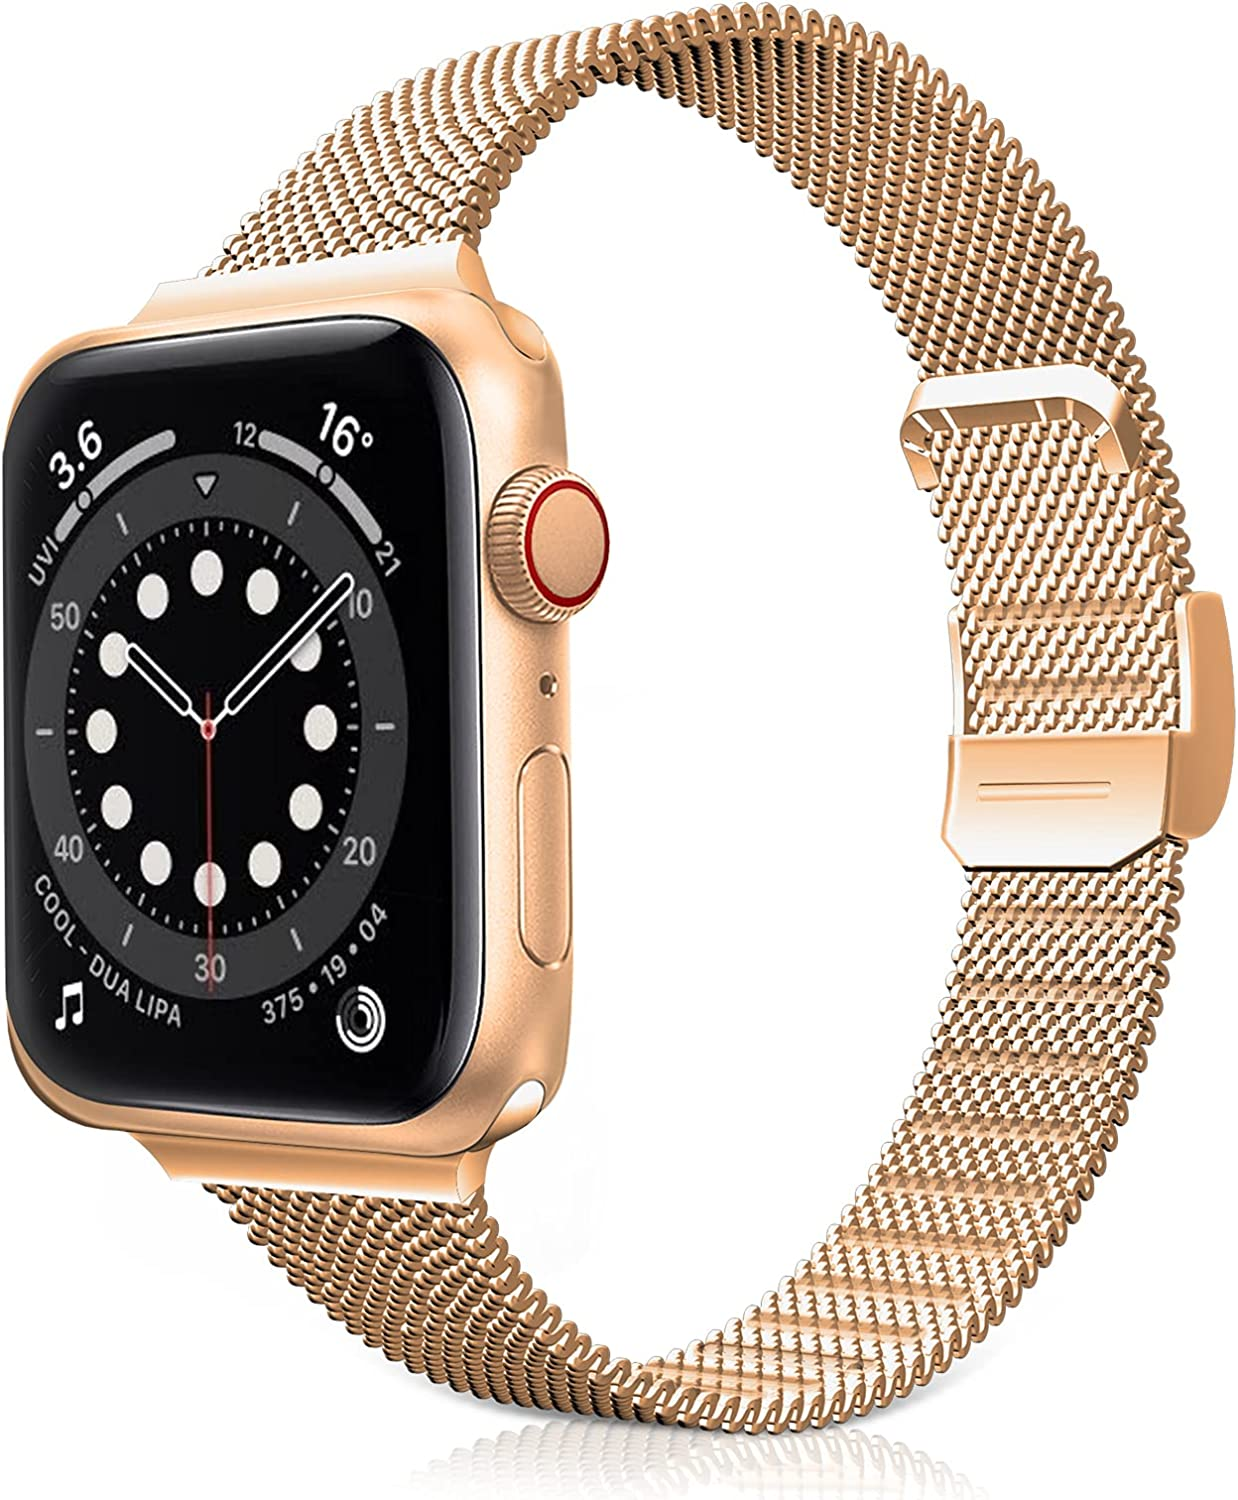 Jomoq Slim Bands Compatible with Apple Watch 38mm 40mm 42mm 44mm, Stainless Steel Mesh Metal Slim Thin Replacement Wristbands Compatible for iWatch Series 6/5/4/3/2/1 SE Women Girls